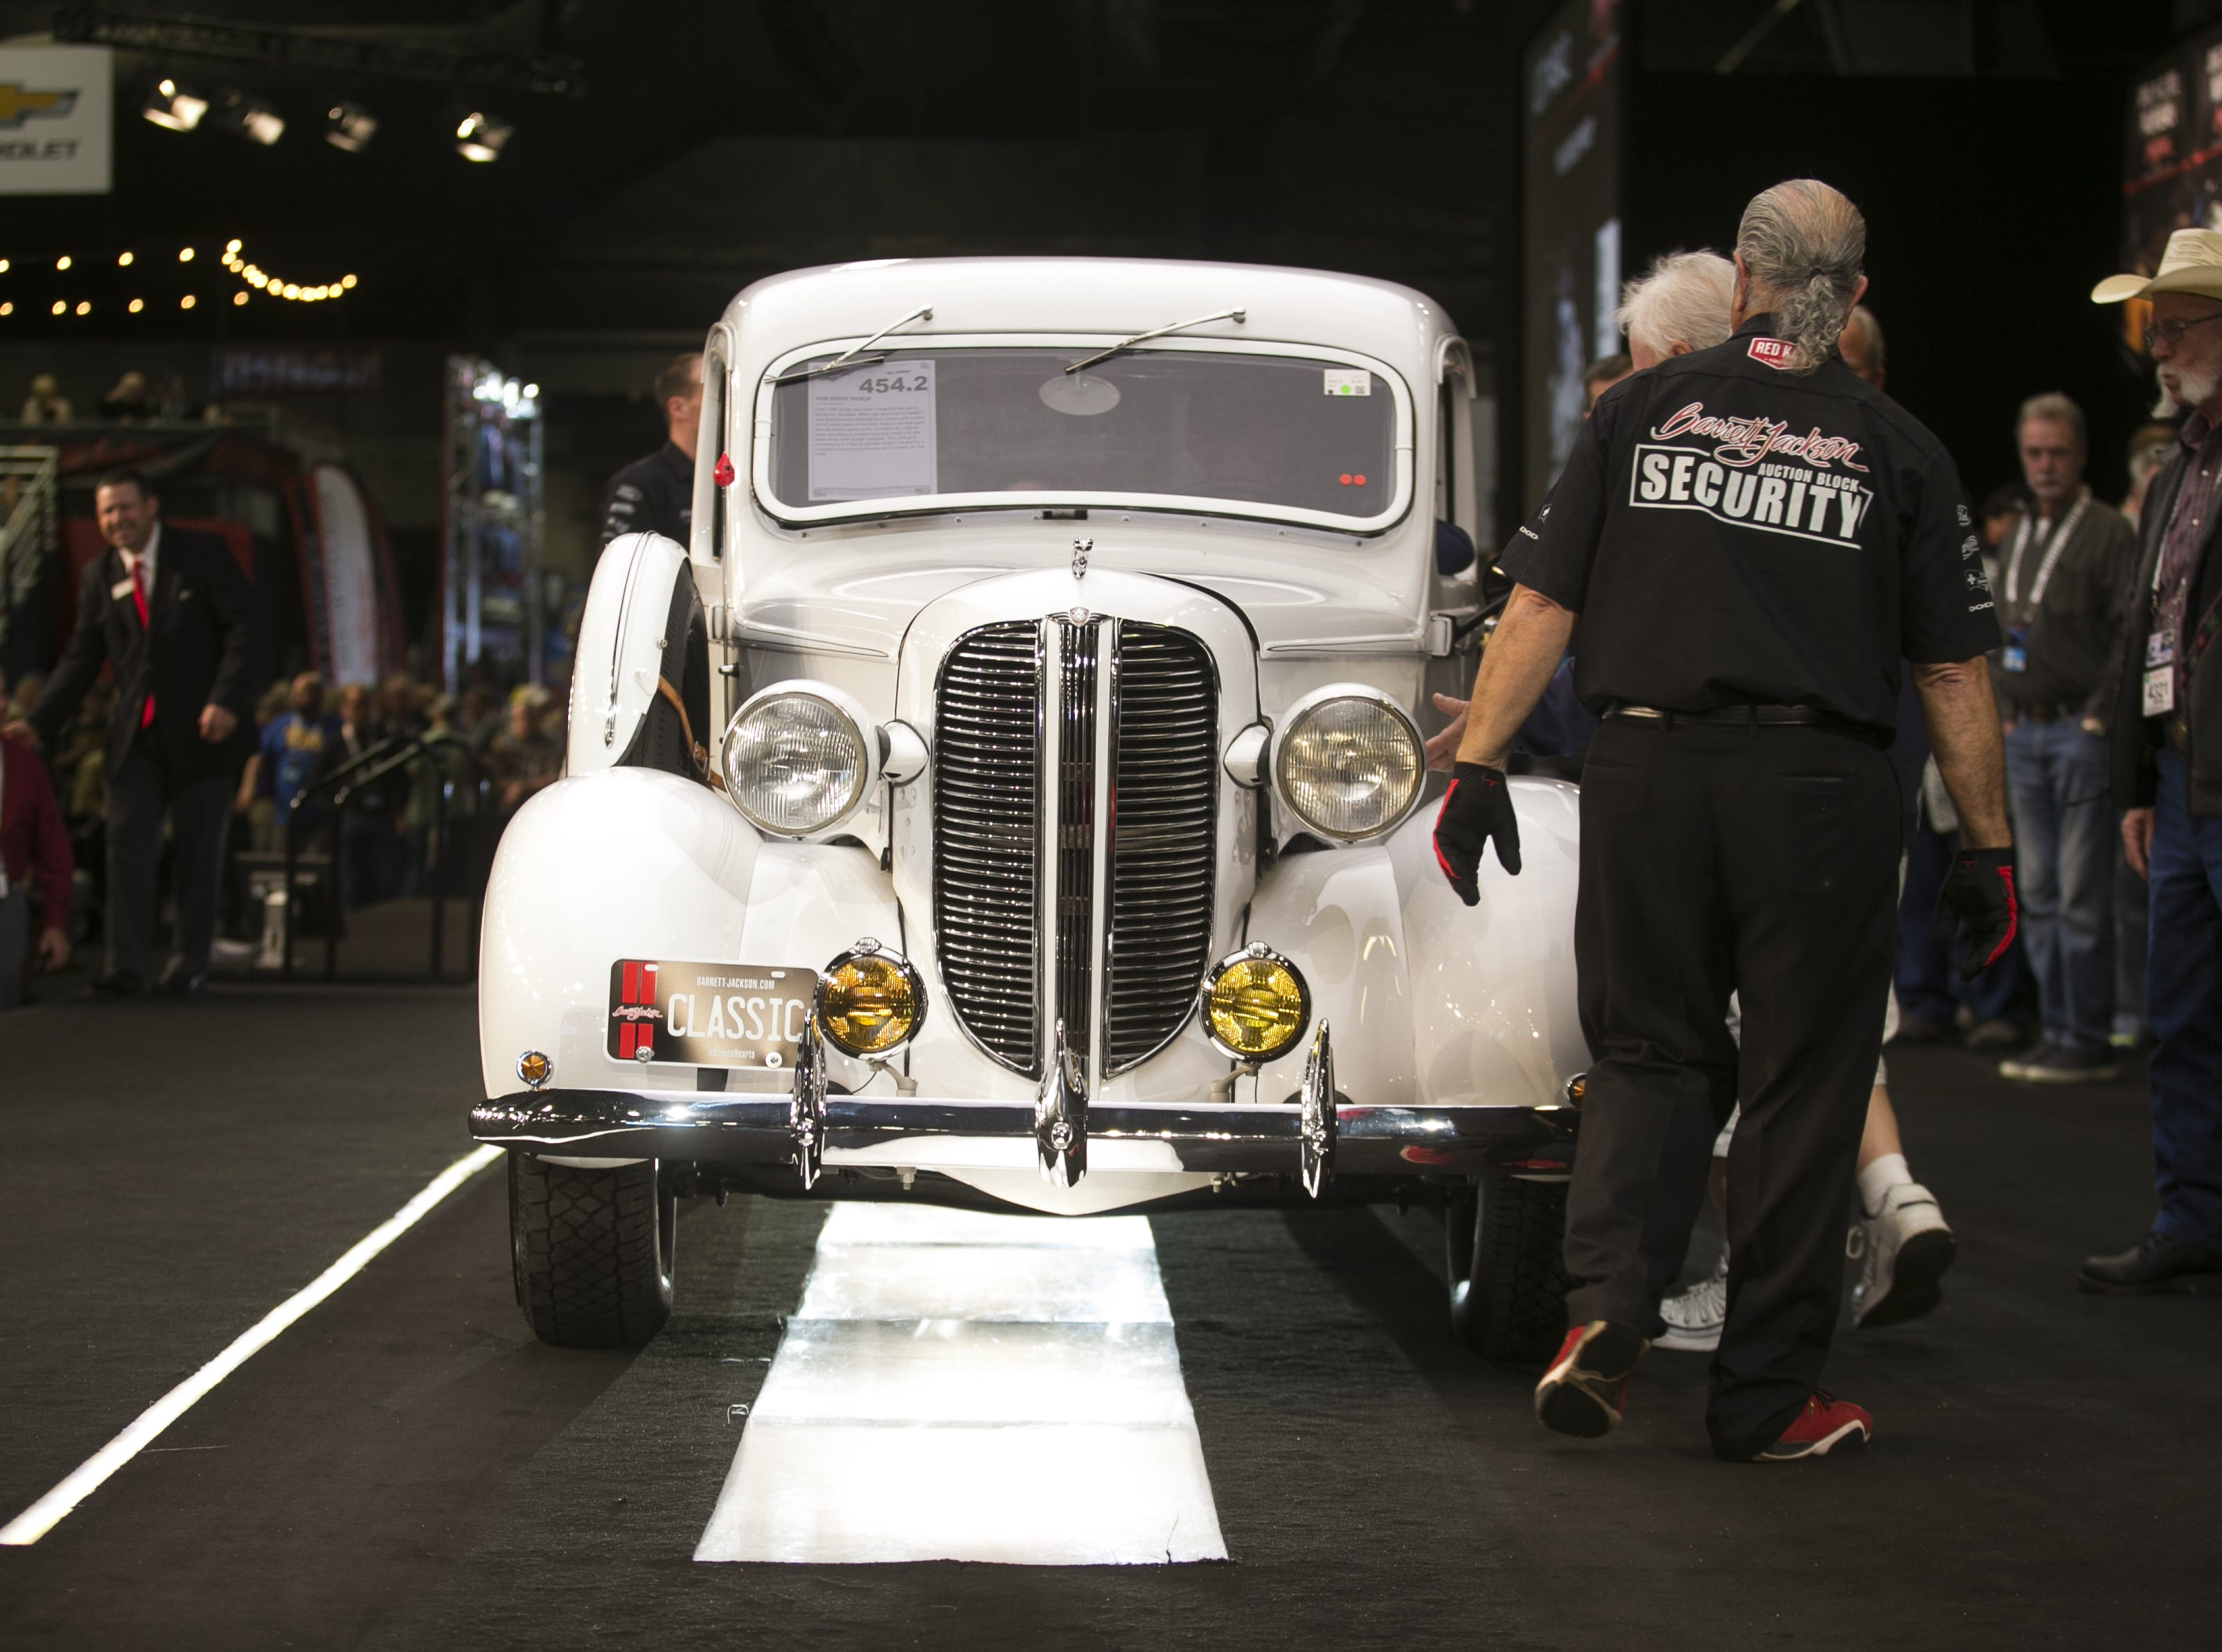 A 1938 Dodge Pickup is auctioned at the Barrett-Jackson Car Auction at WestWorld in Scottsdale, Arizona, on Jan. 16, 2019.